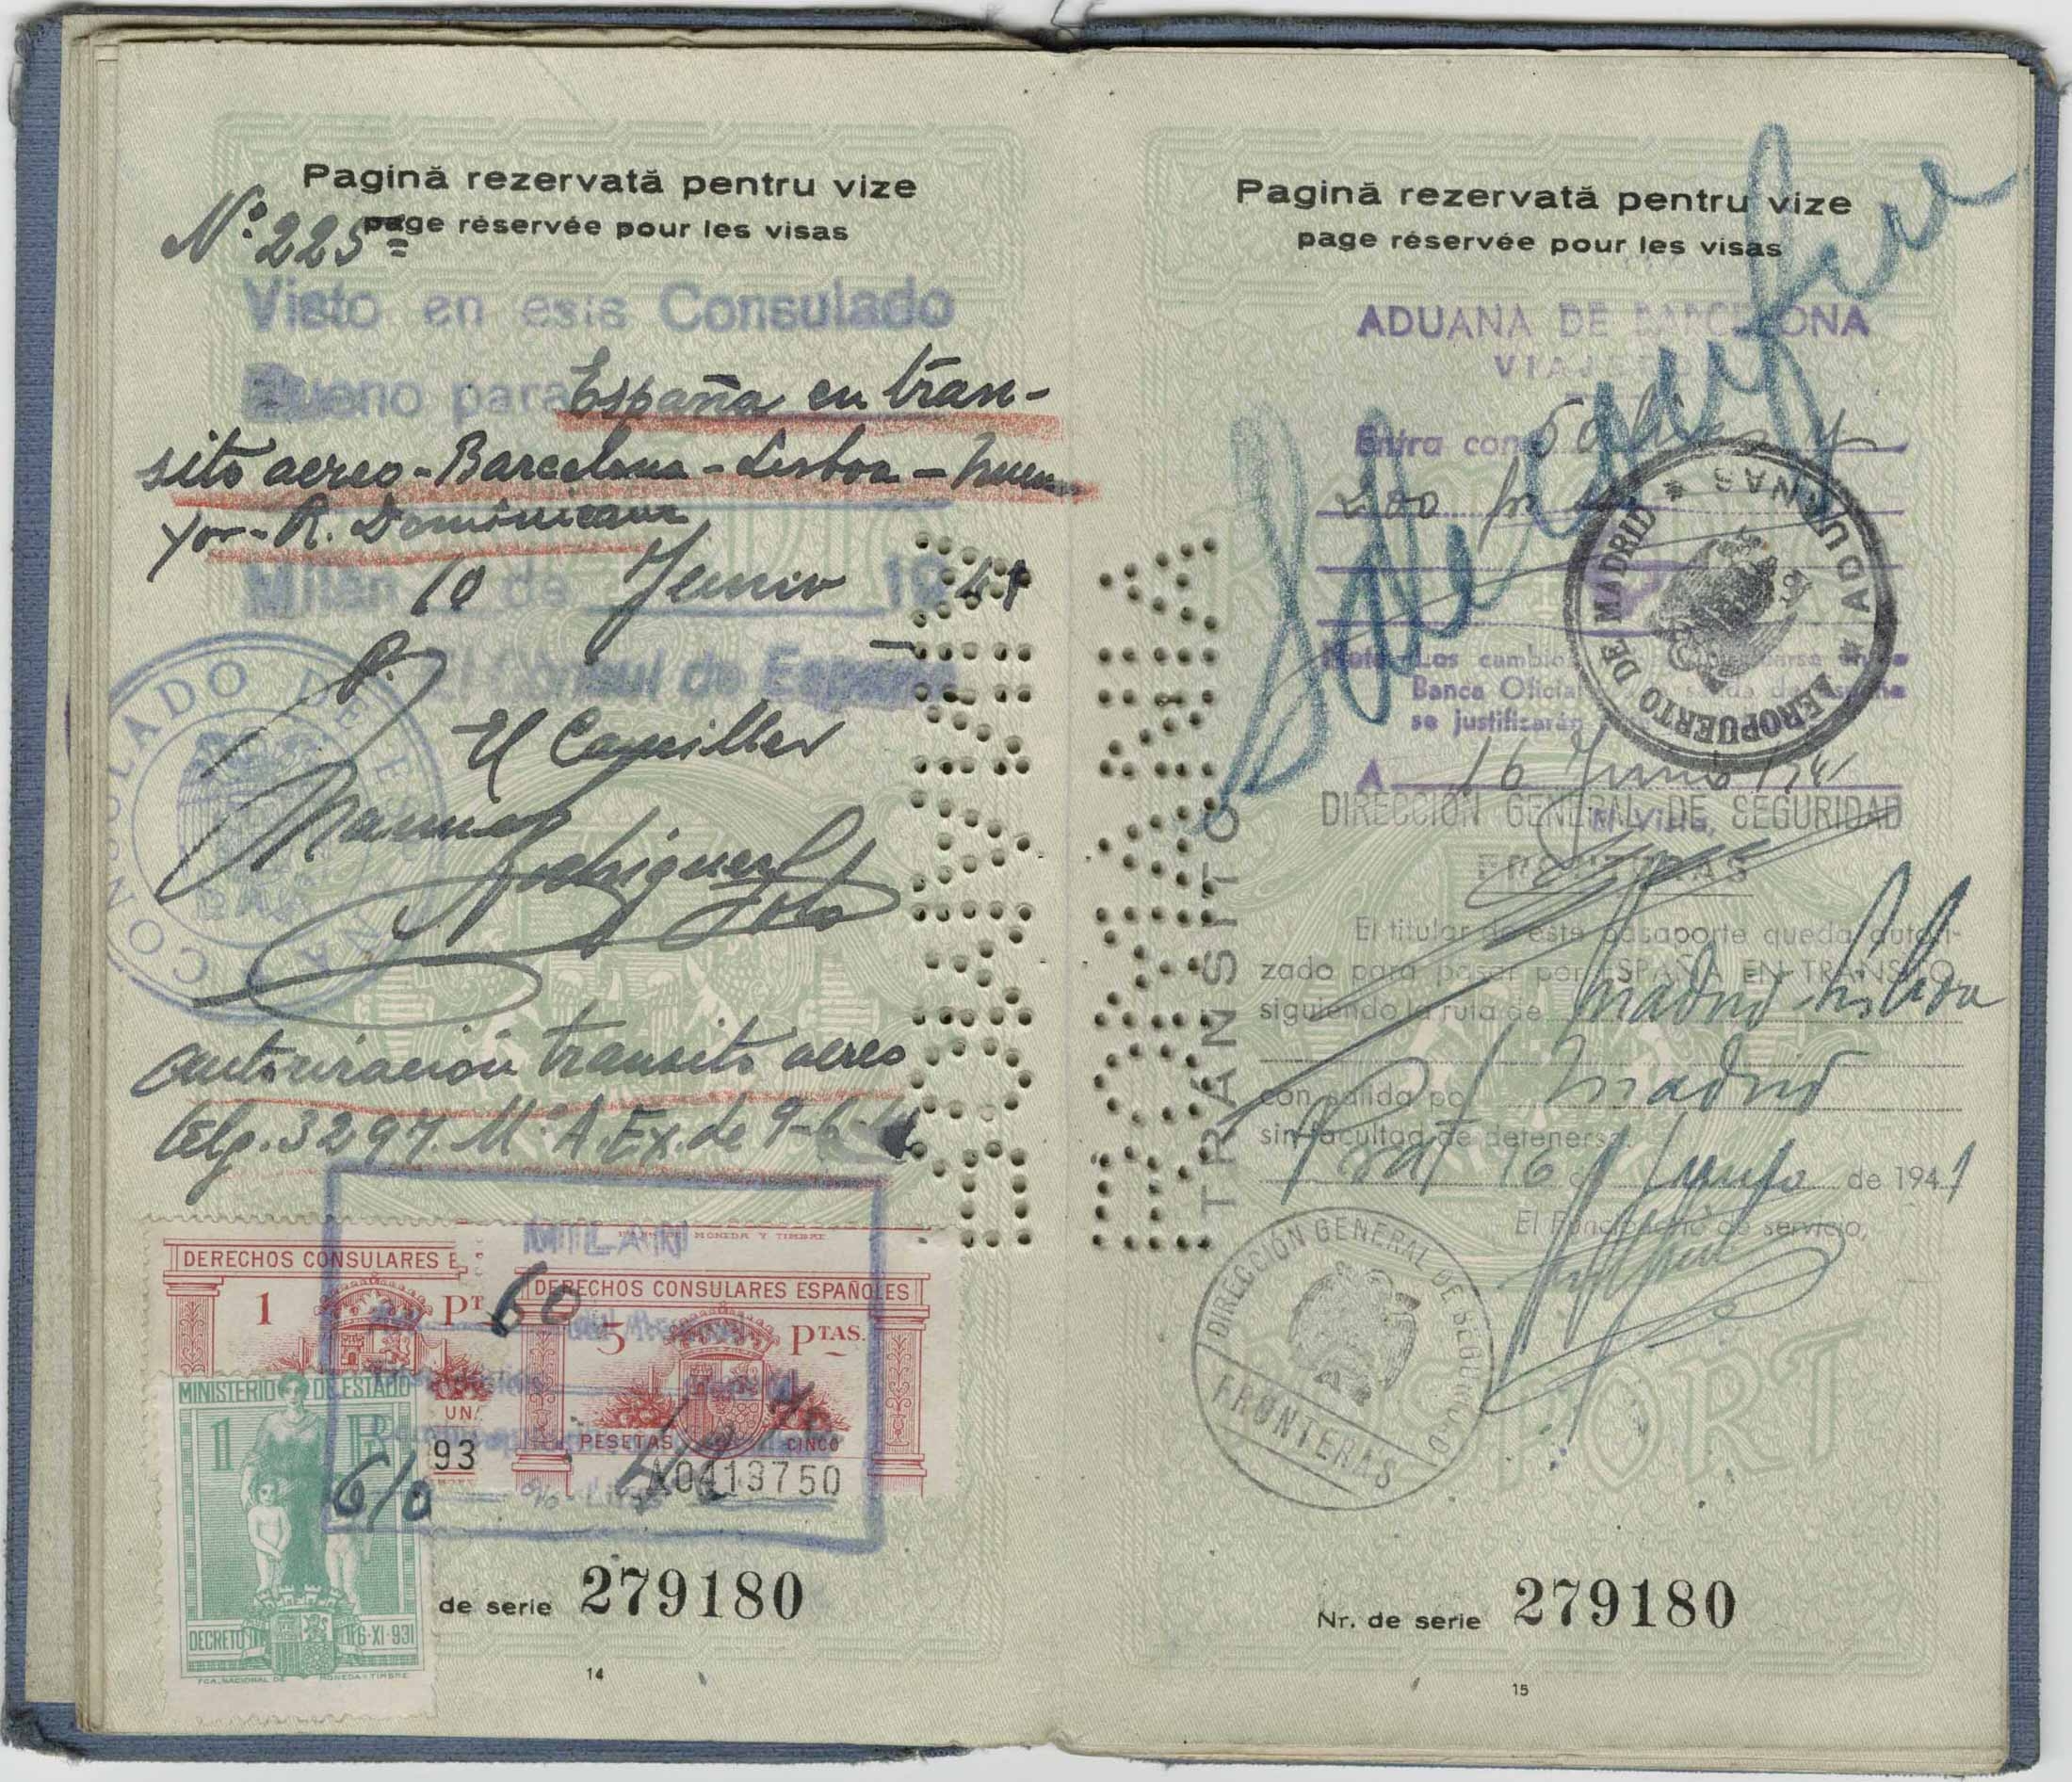 Pages 14-15 of Steinberg's expired Romanian passport, 1940. Saul Steinberg Papers, Beinecke Rare Book and Manuscript Library, Yale University.